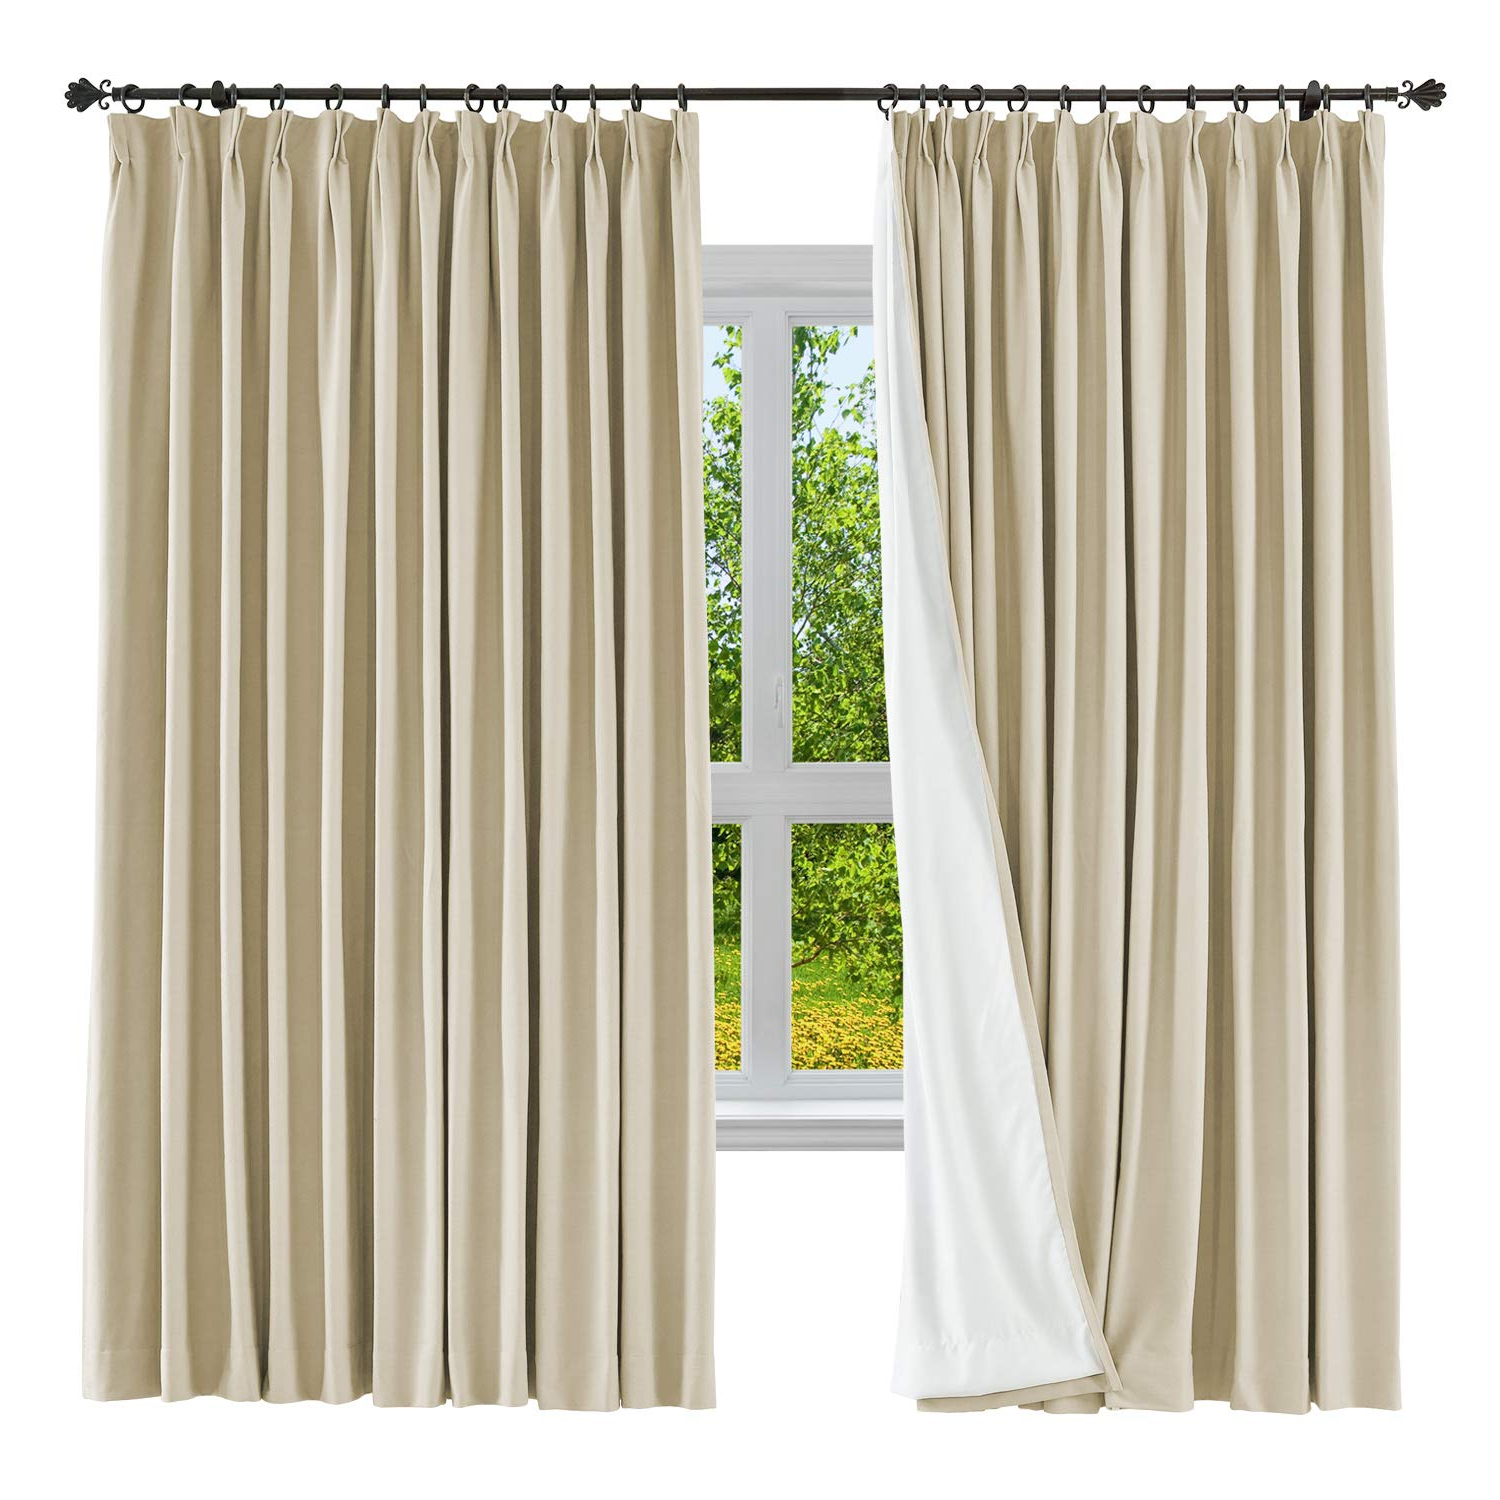 Latest Solid Country Cotton Linen Weave Curtain Panels Throughout Cololeaf Blackout Curtain Panel Cotton Linen Drape Window (Gallery 20 of 20)